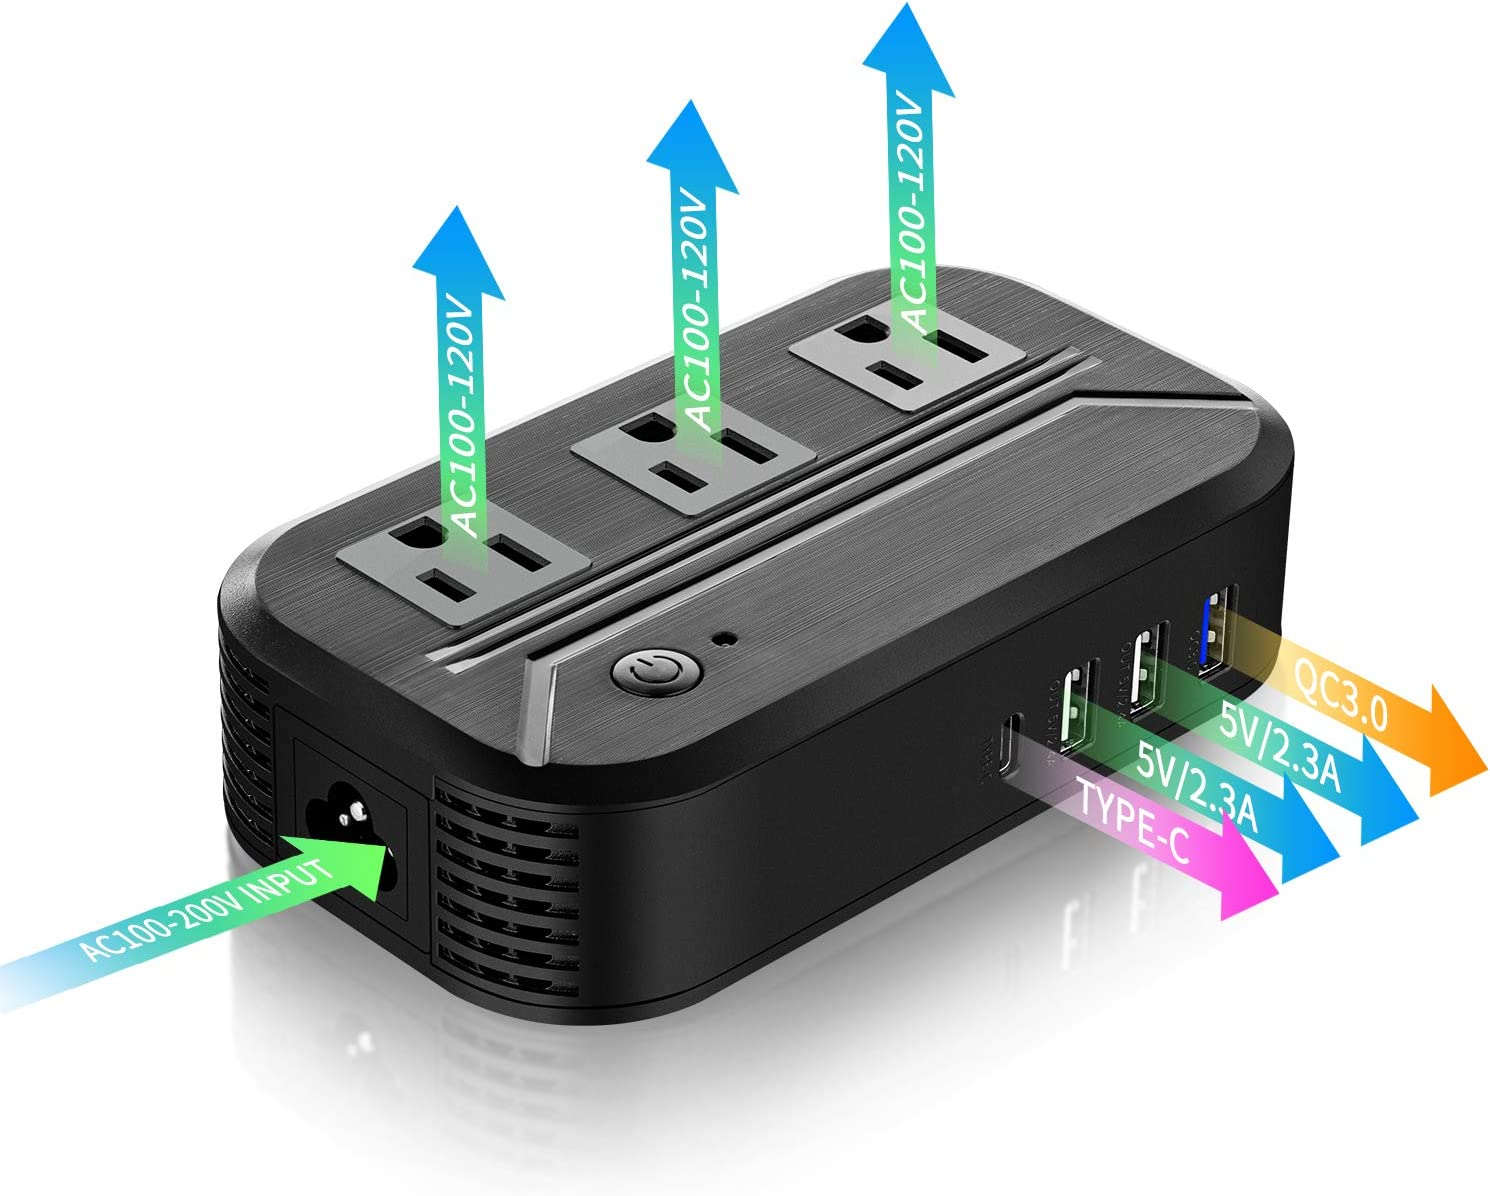 Voltage Converter 2300W Power Step Down 220V to 120V Universal Travel Adapter Power Converter Power Transformer w/3 AC outlets 3USB Ports 1 Type-C International Plug Converters Over 180 Countries: Home Audio & Theater